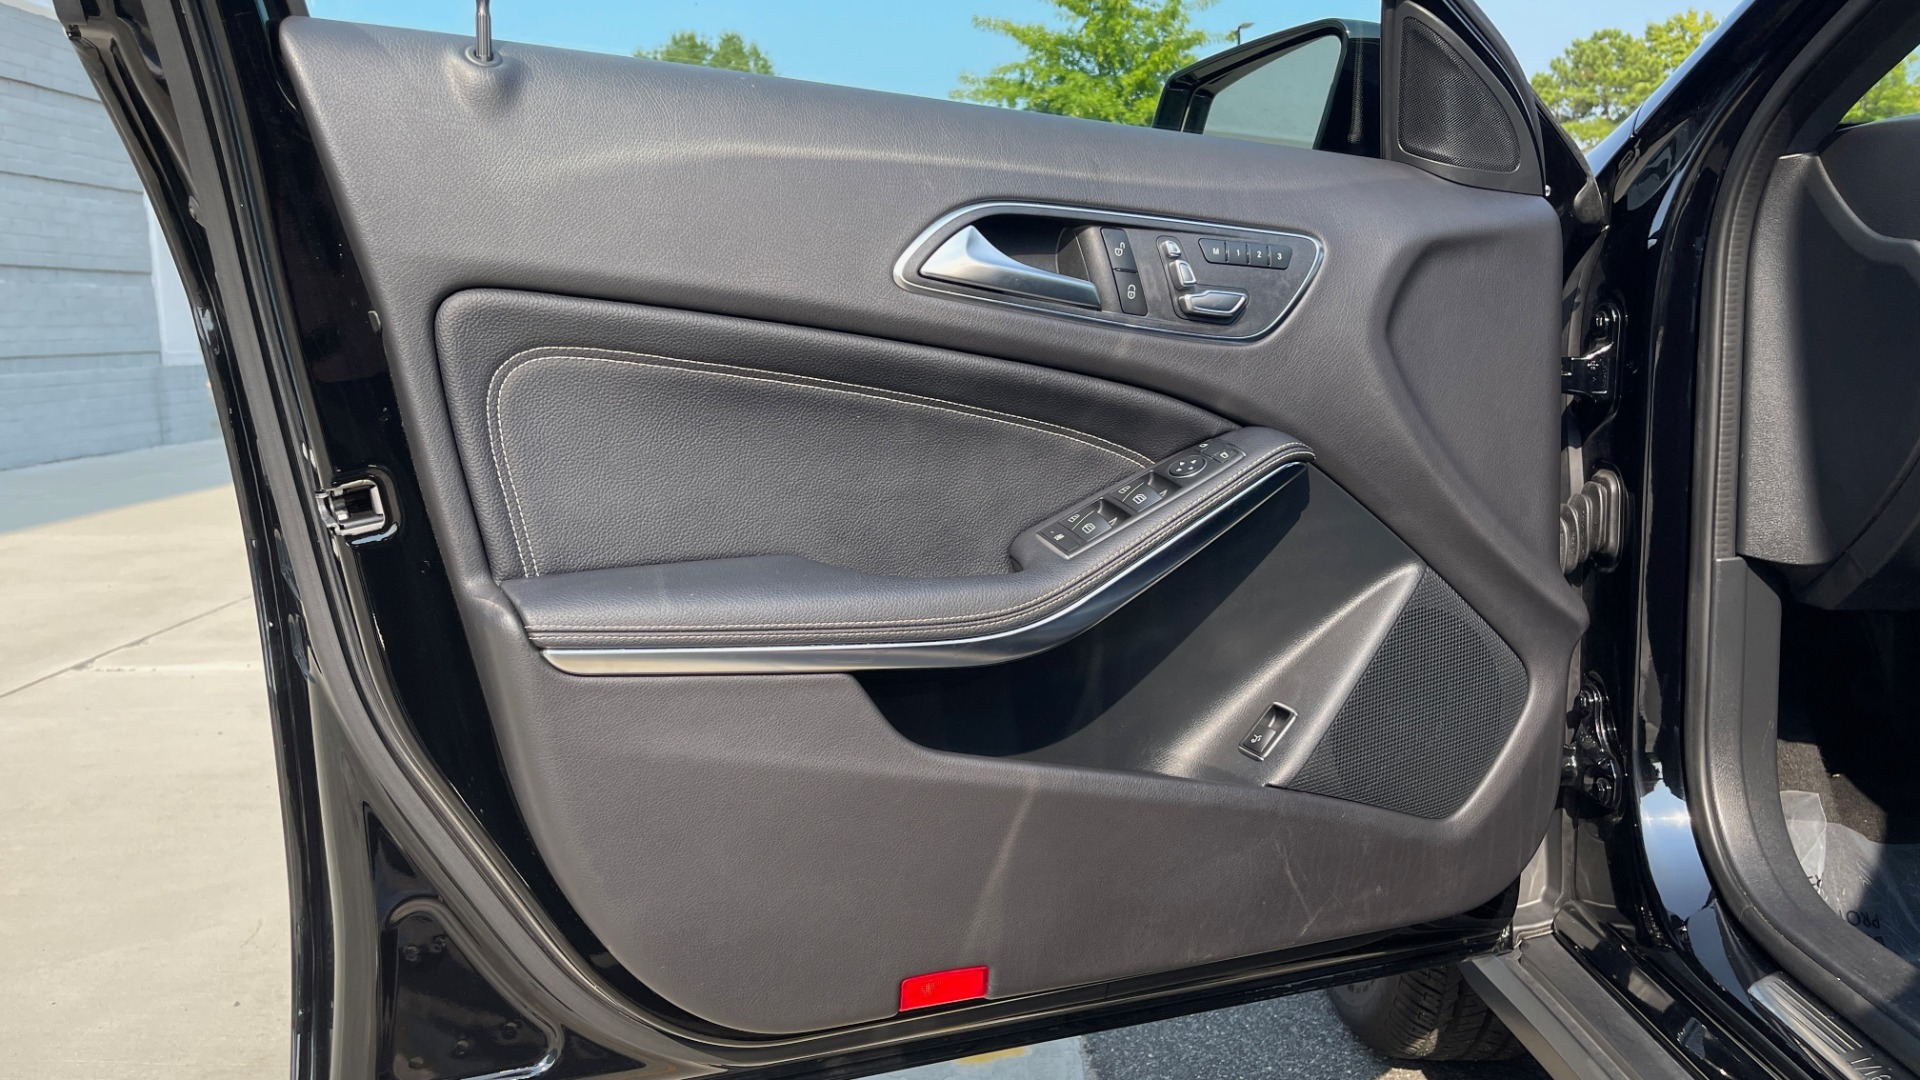 Used 2018 Mercedes-Benz GLA 250 SUV / GARMIN MAP PILOT / 18IN WHEELS / REARVIEW for sale $26,995 at Formula Imports in Charlotte NC 28227 24